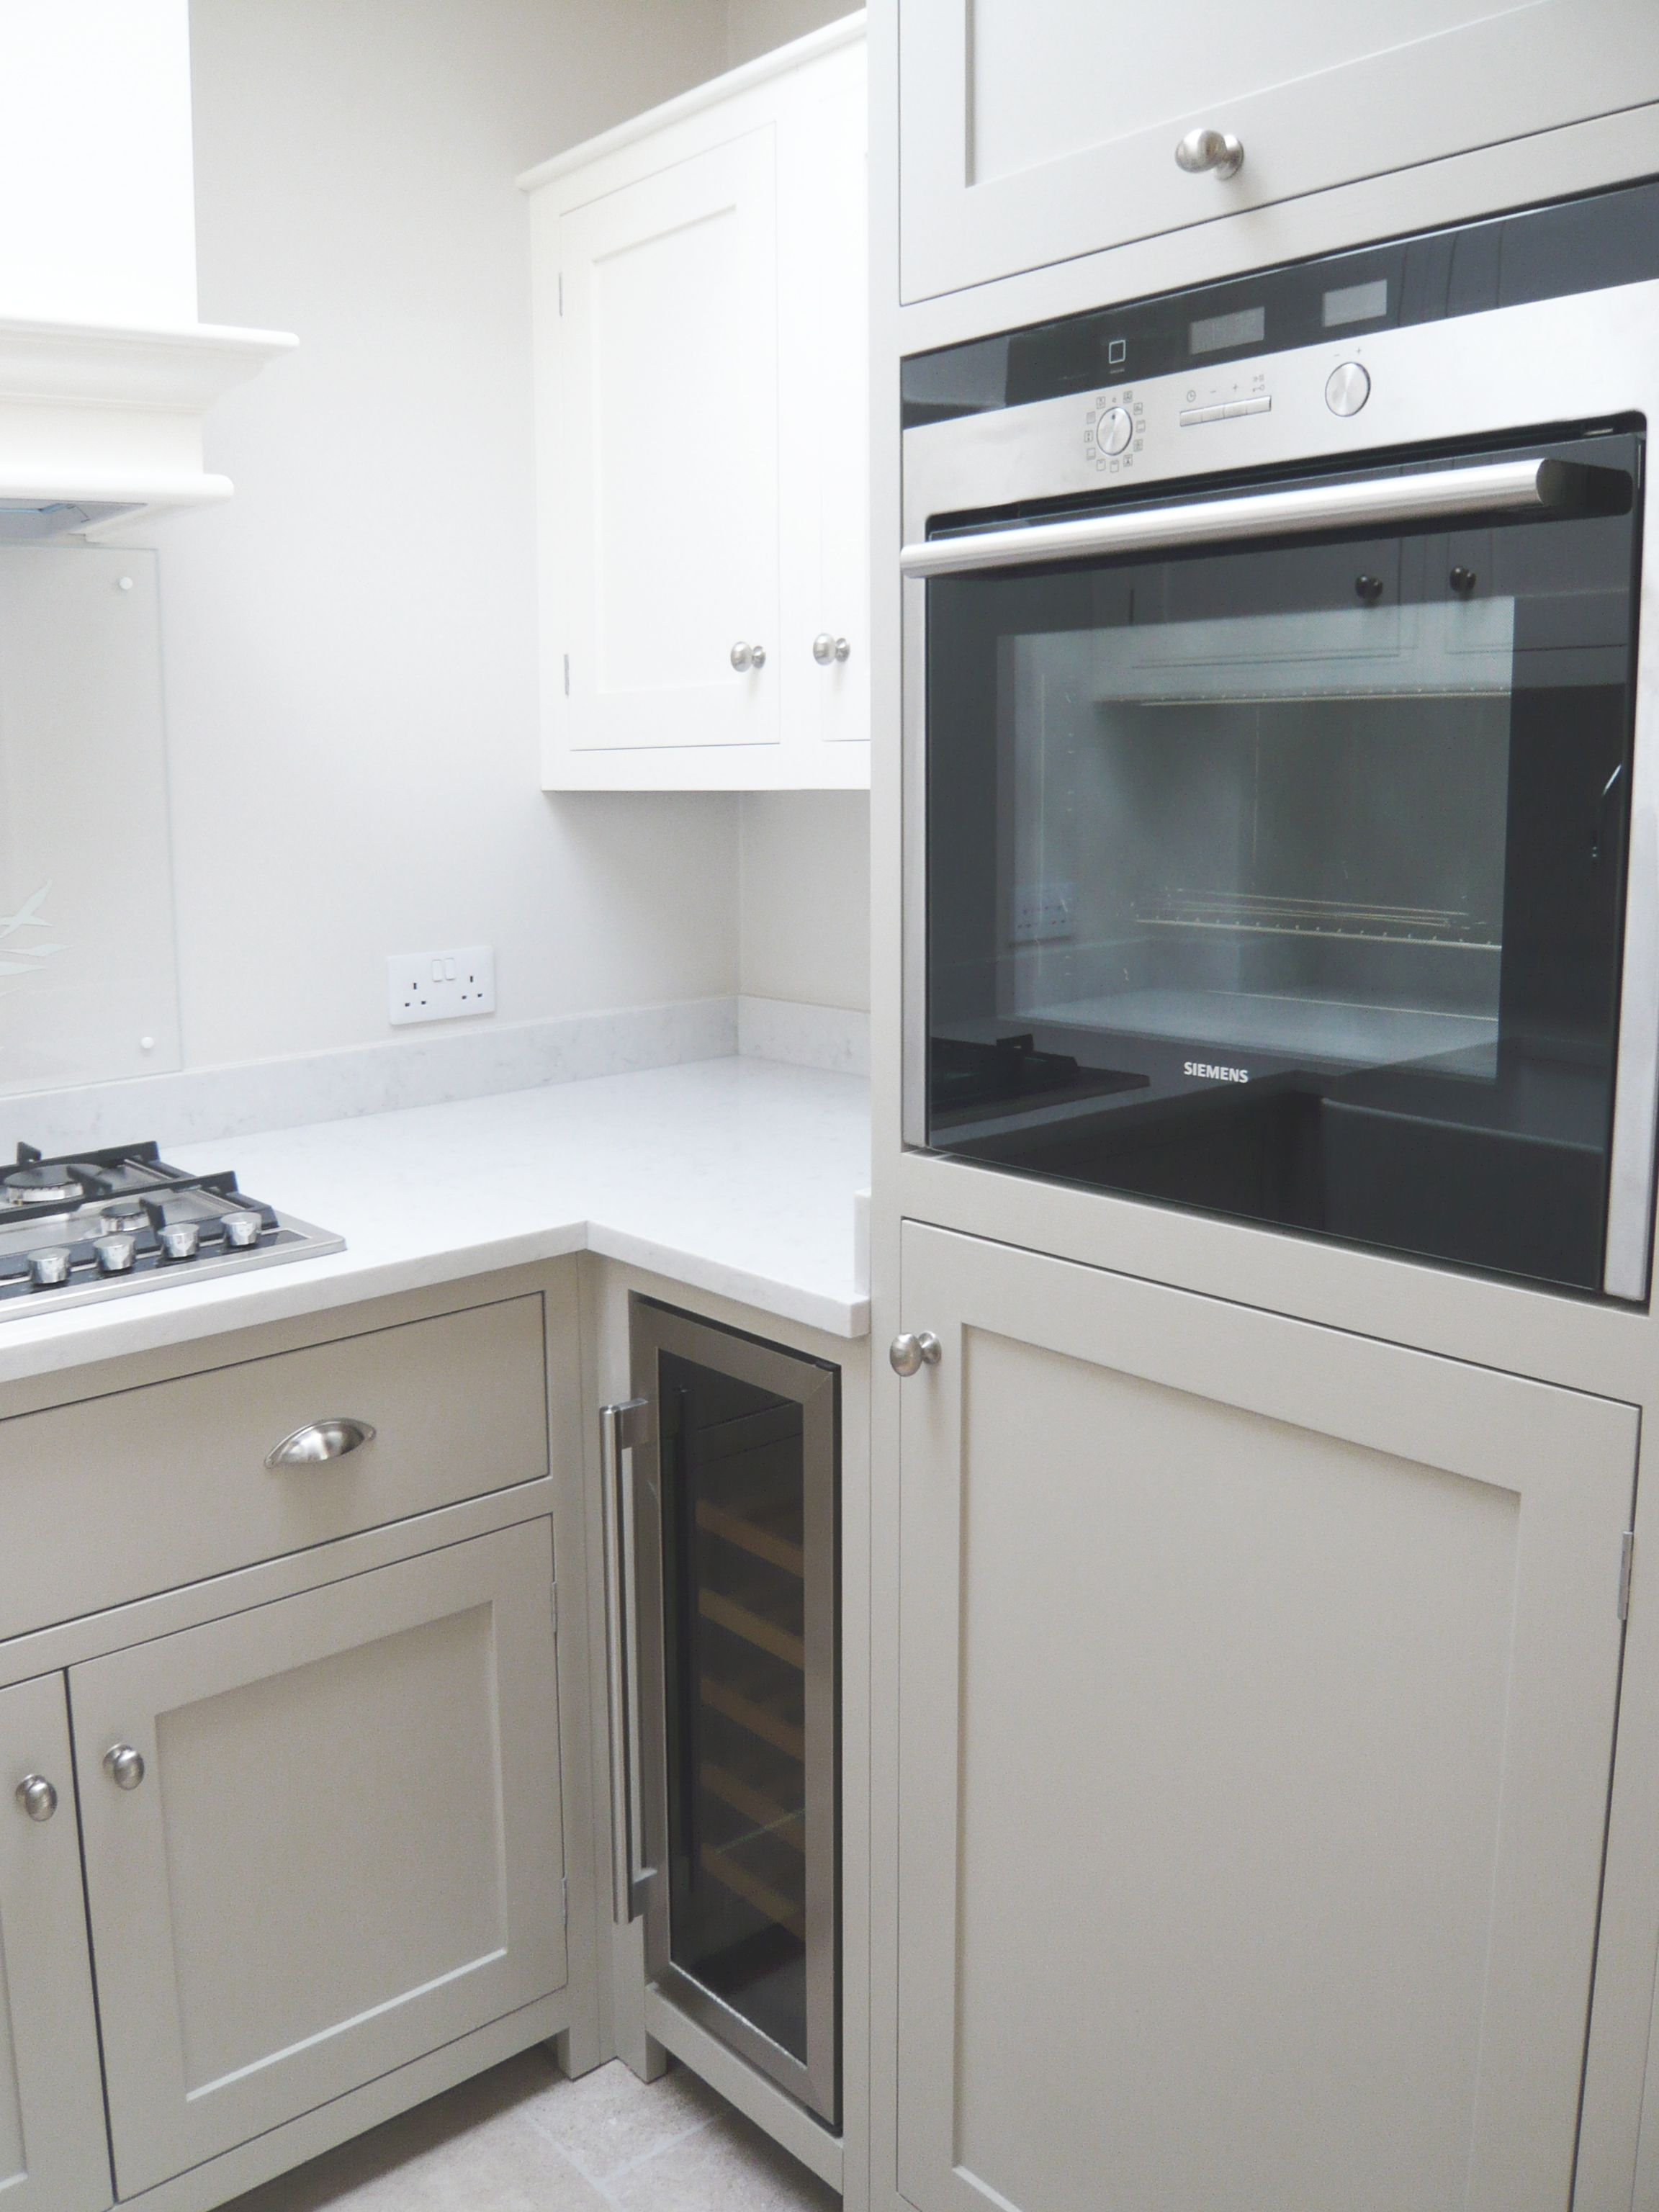 Home küche einfache design bilder this shaker kitchen in a holland park flat may be small but with the